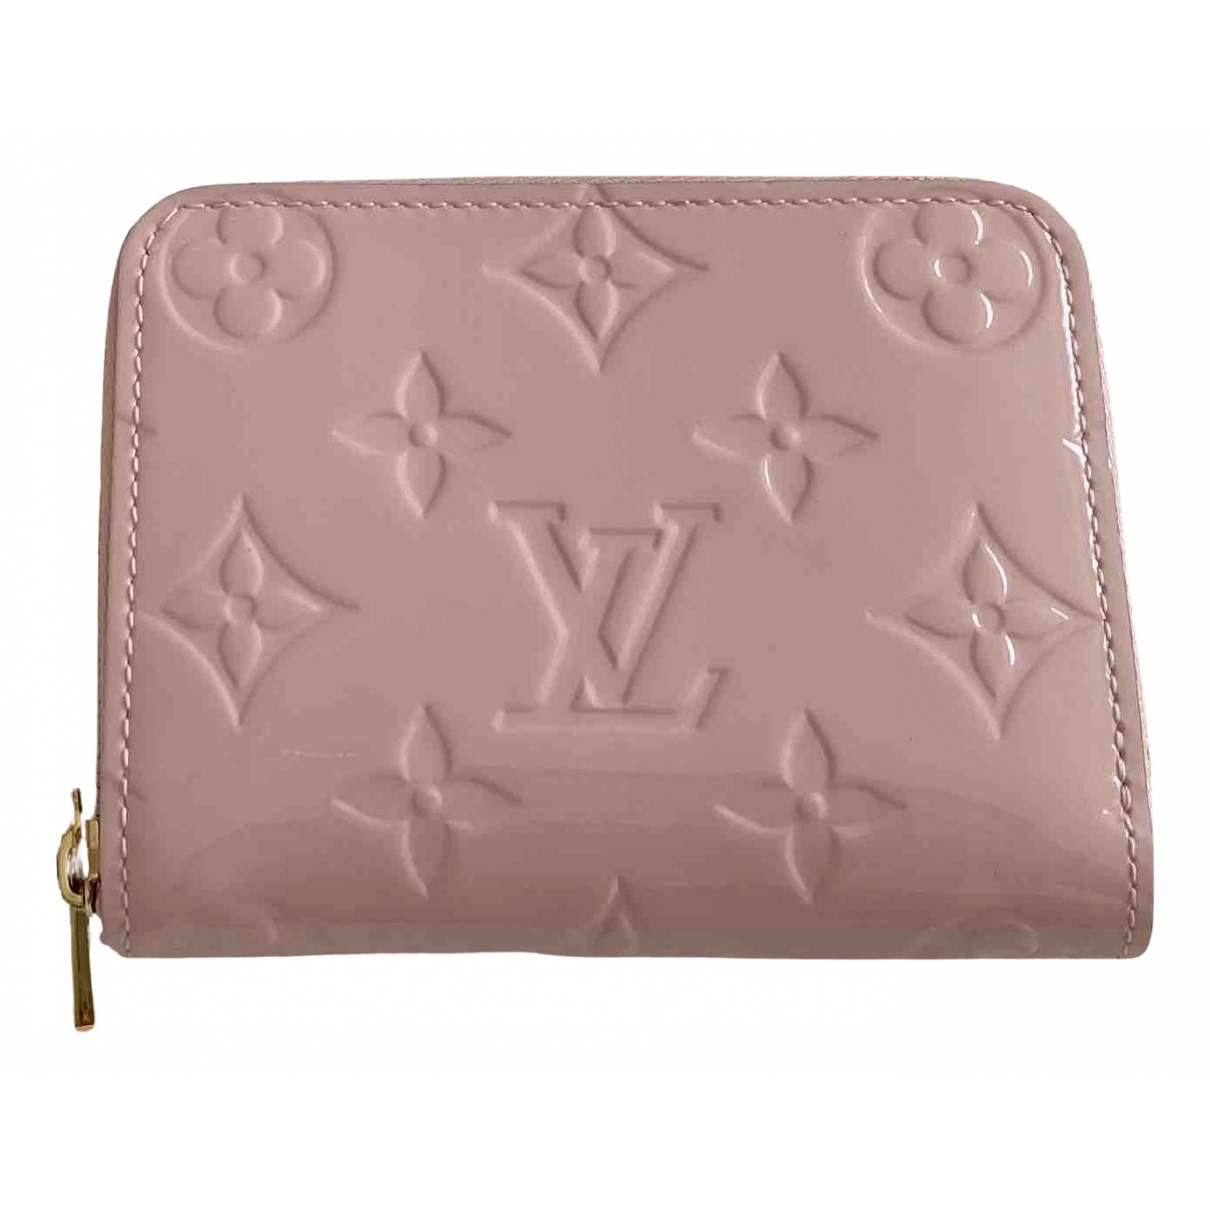 Louis Vuitton Zippy Kleinlederwaren in  Rosa Lackleder